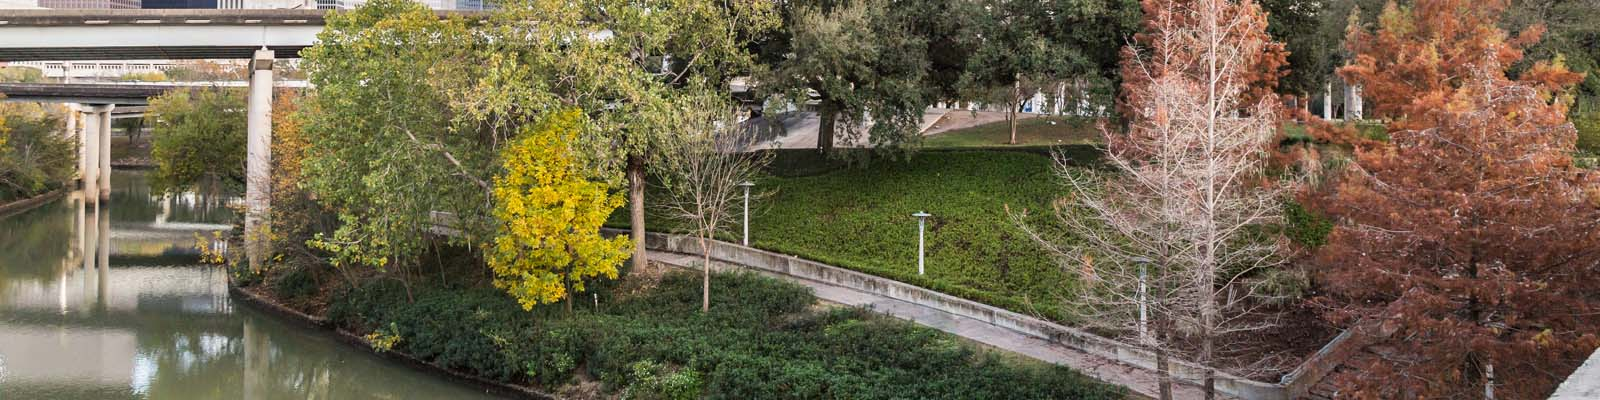 This is an image of path next to a river in Houston Texas. ASTA-USA provides professional translation services in this city.